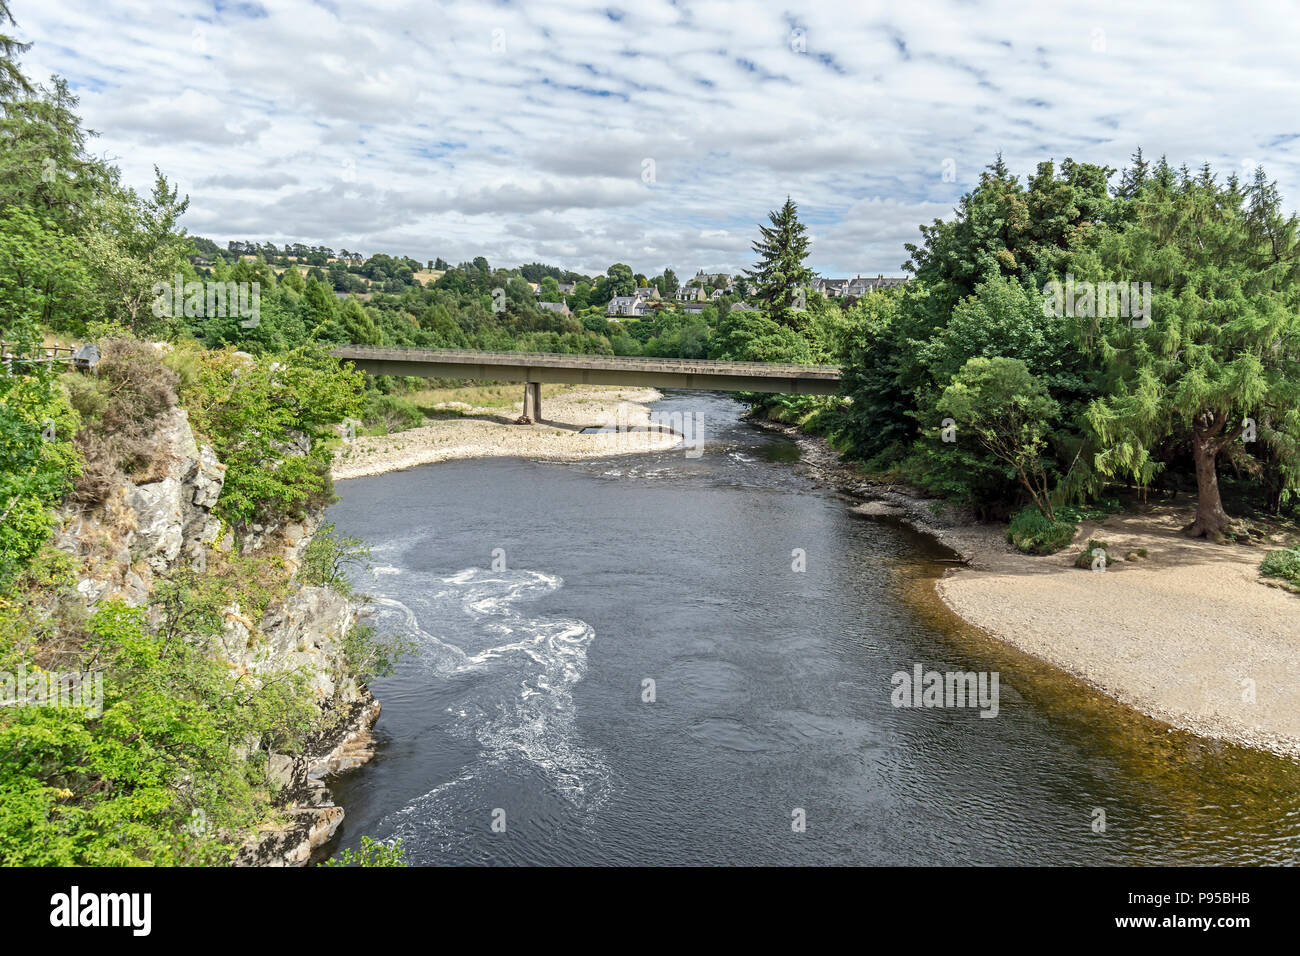 The new Craigellachie Bridge spanning the River Spey at Craigellachie near Aberlour in Moray Scotland UK - Stock Image